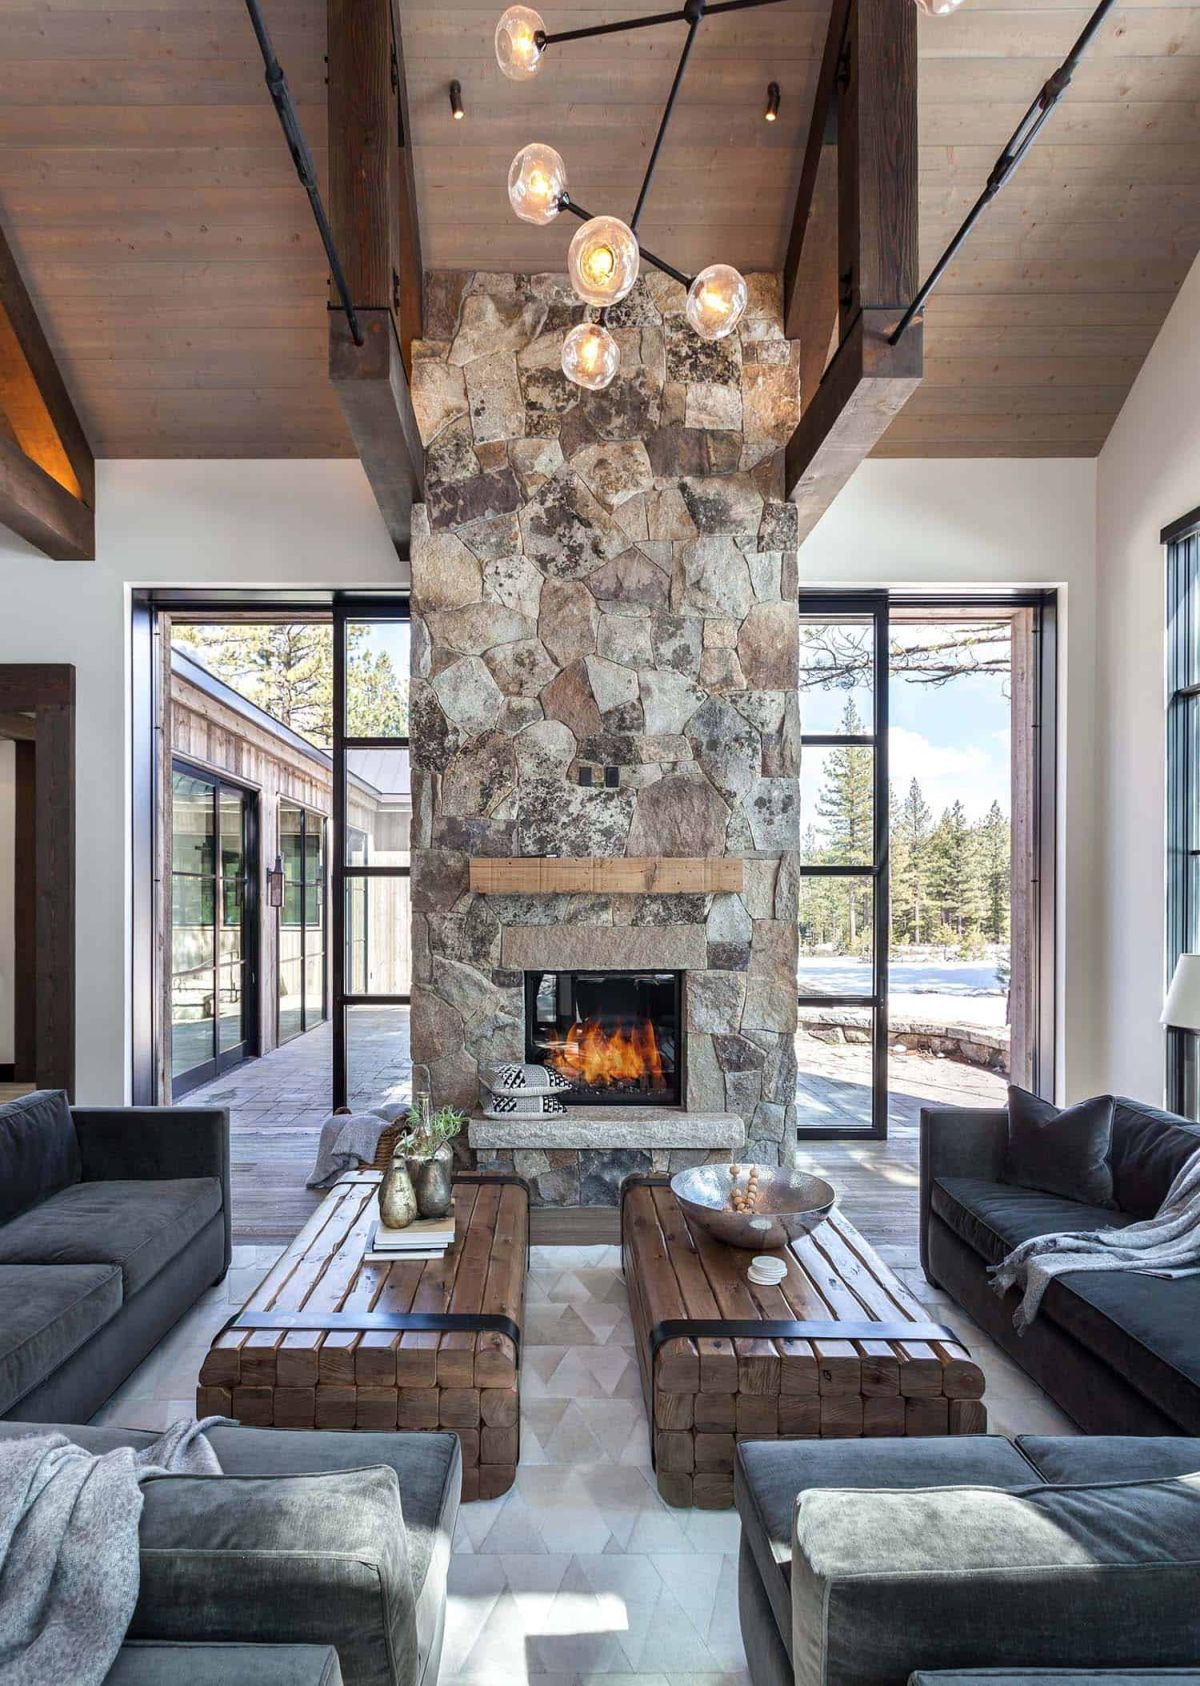 The floor-to-ceiling stone fireplace in the living room has sliding doors on either side which disappear inside it when open